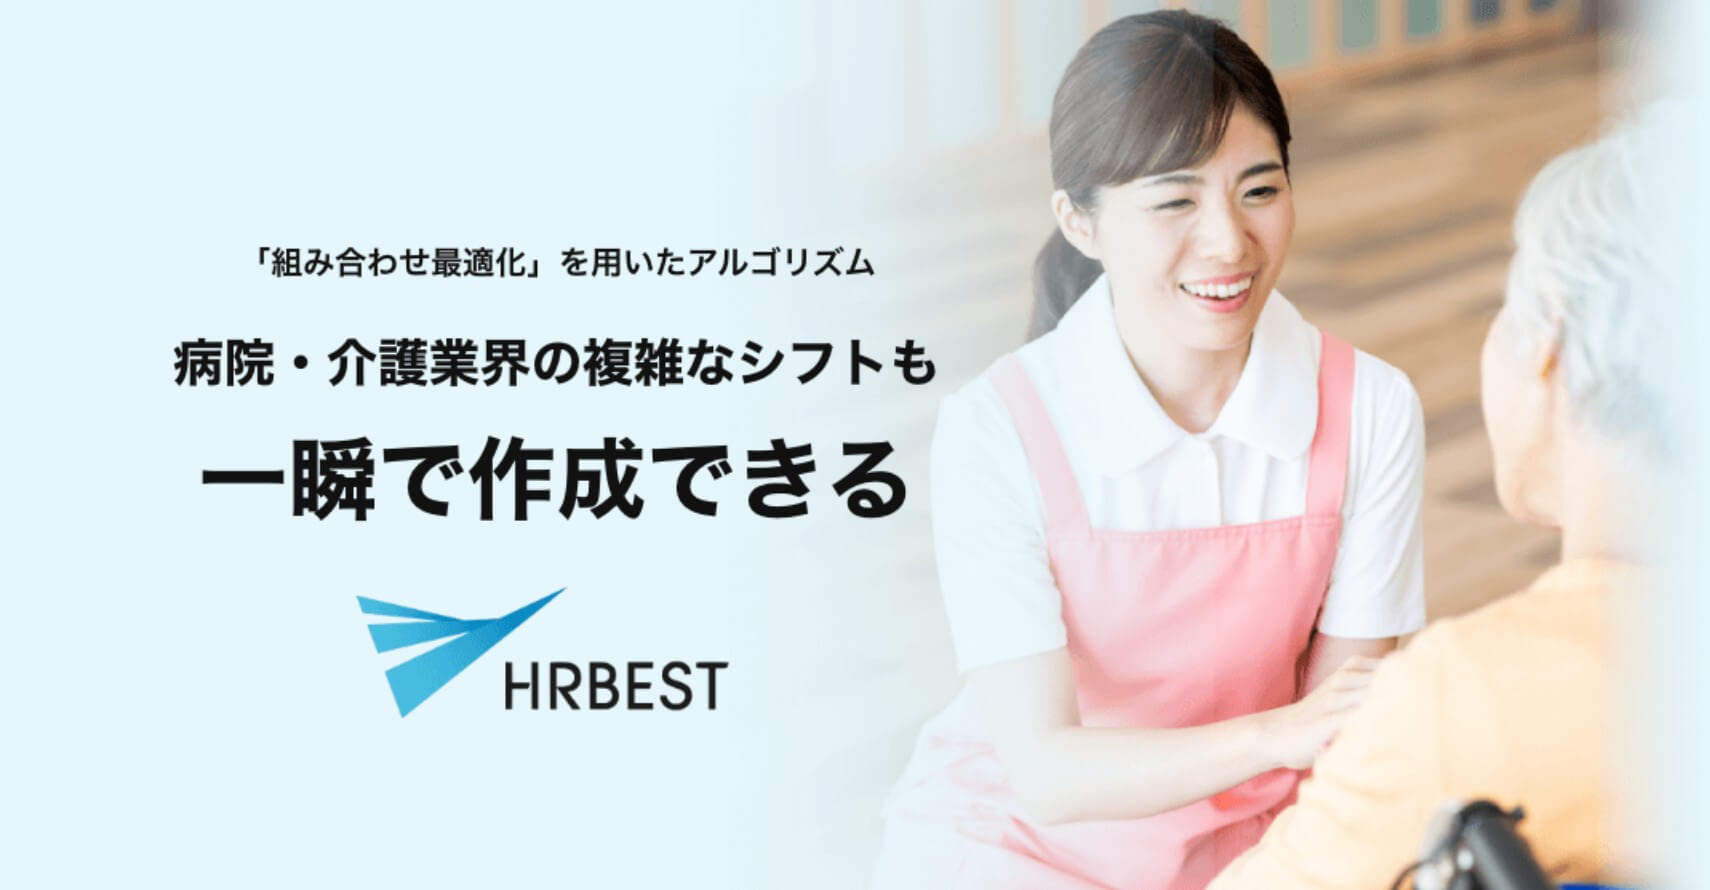 article-banner-hrbest-hospital-care